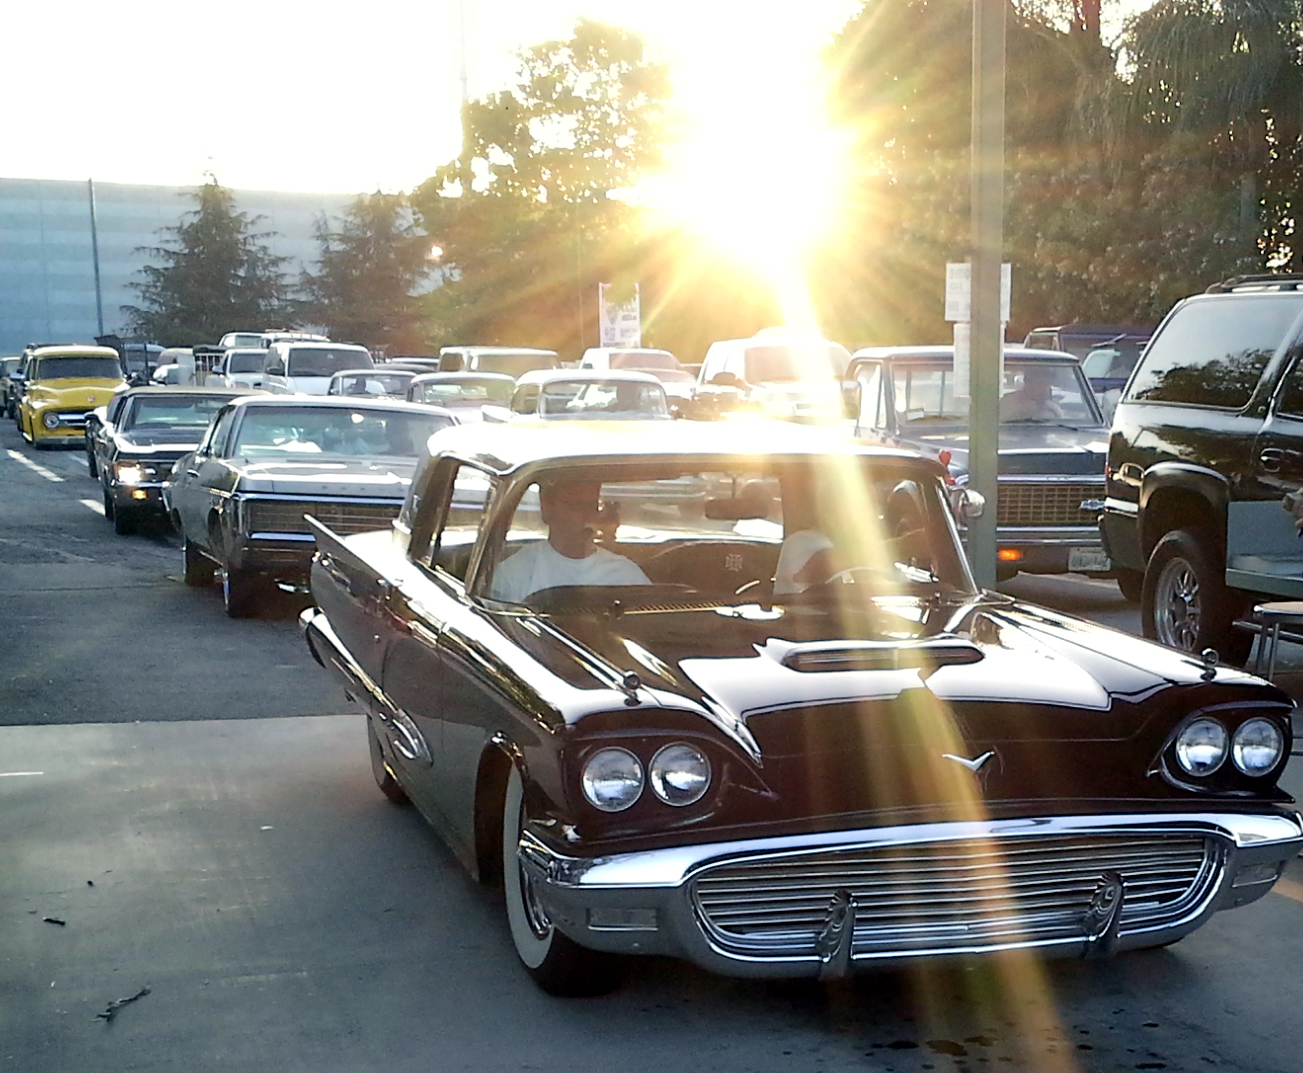 Classic cars entering a recent Pomona Swap Meet... and there's that sun again!